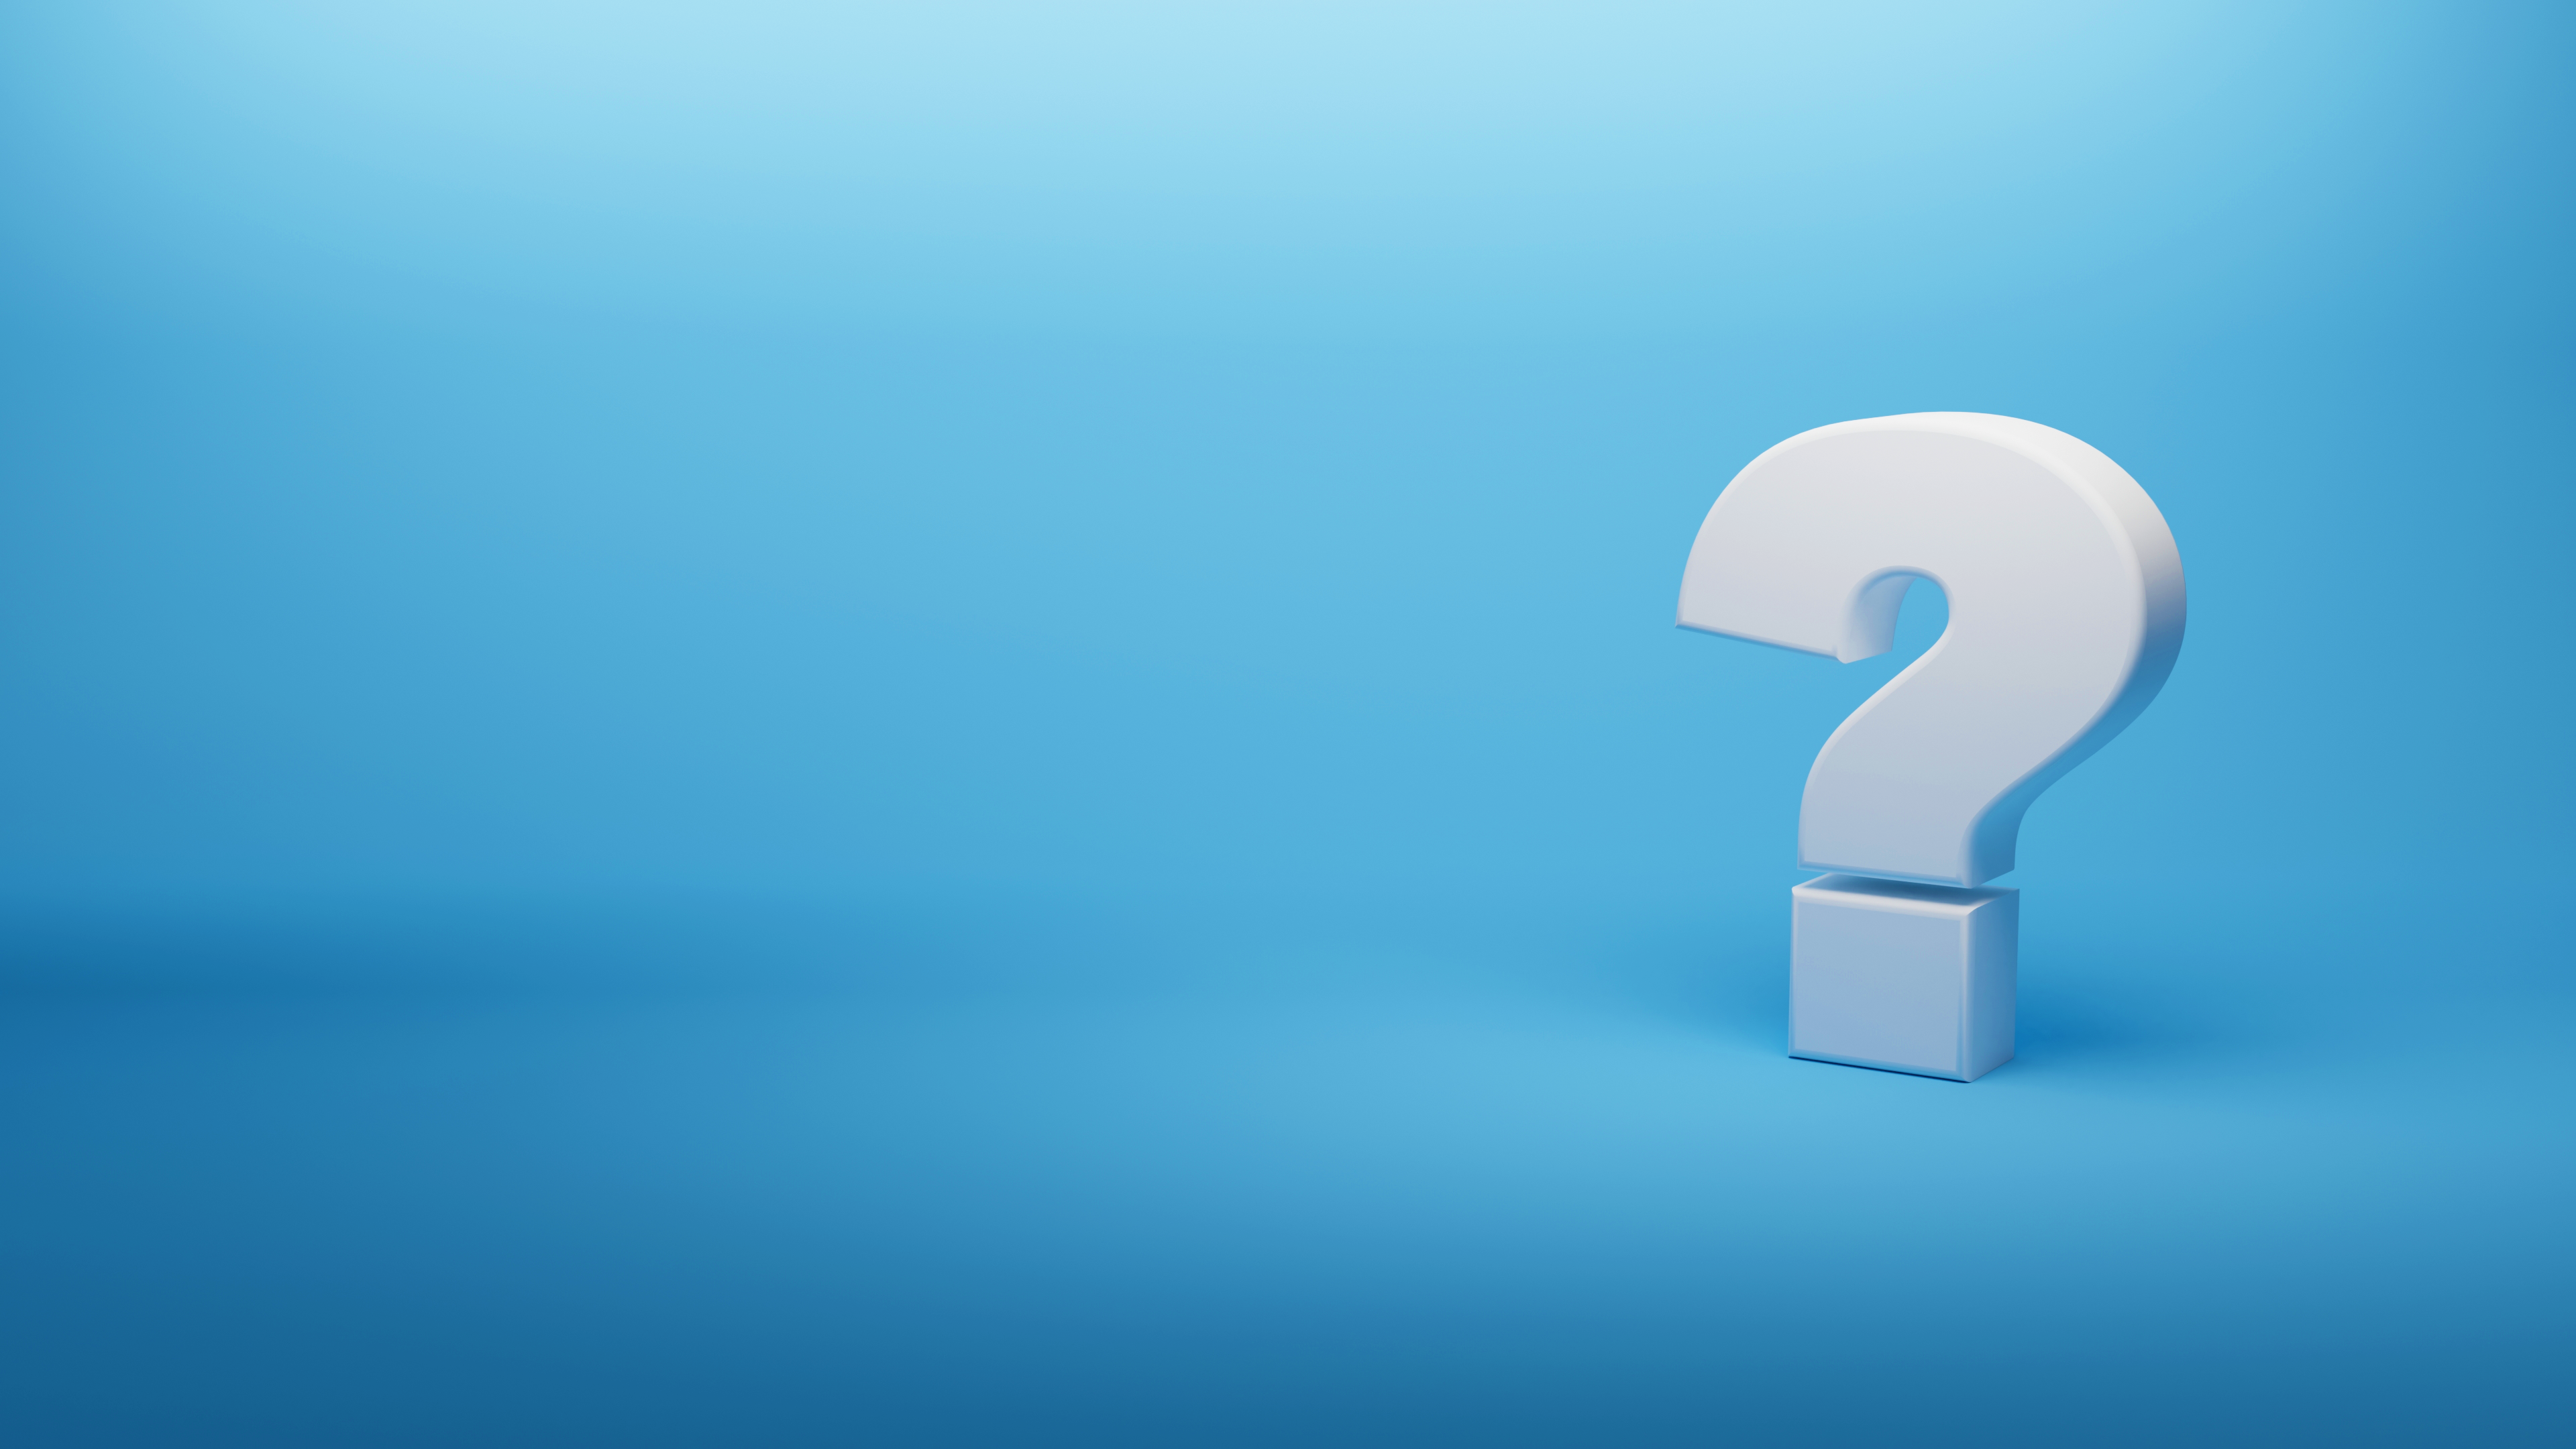 Top 3 Questions Business Leaders Need to Ask Themselves